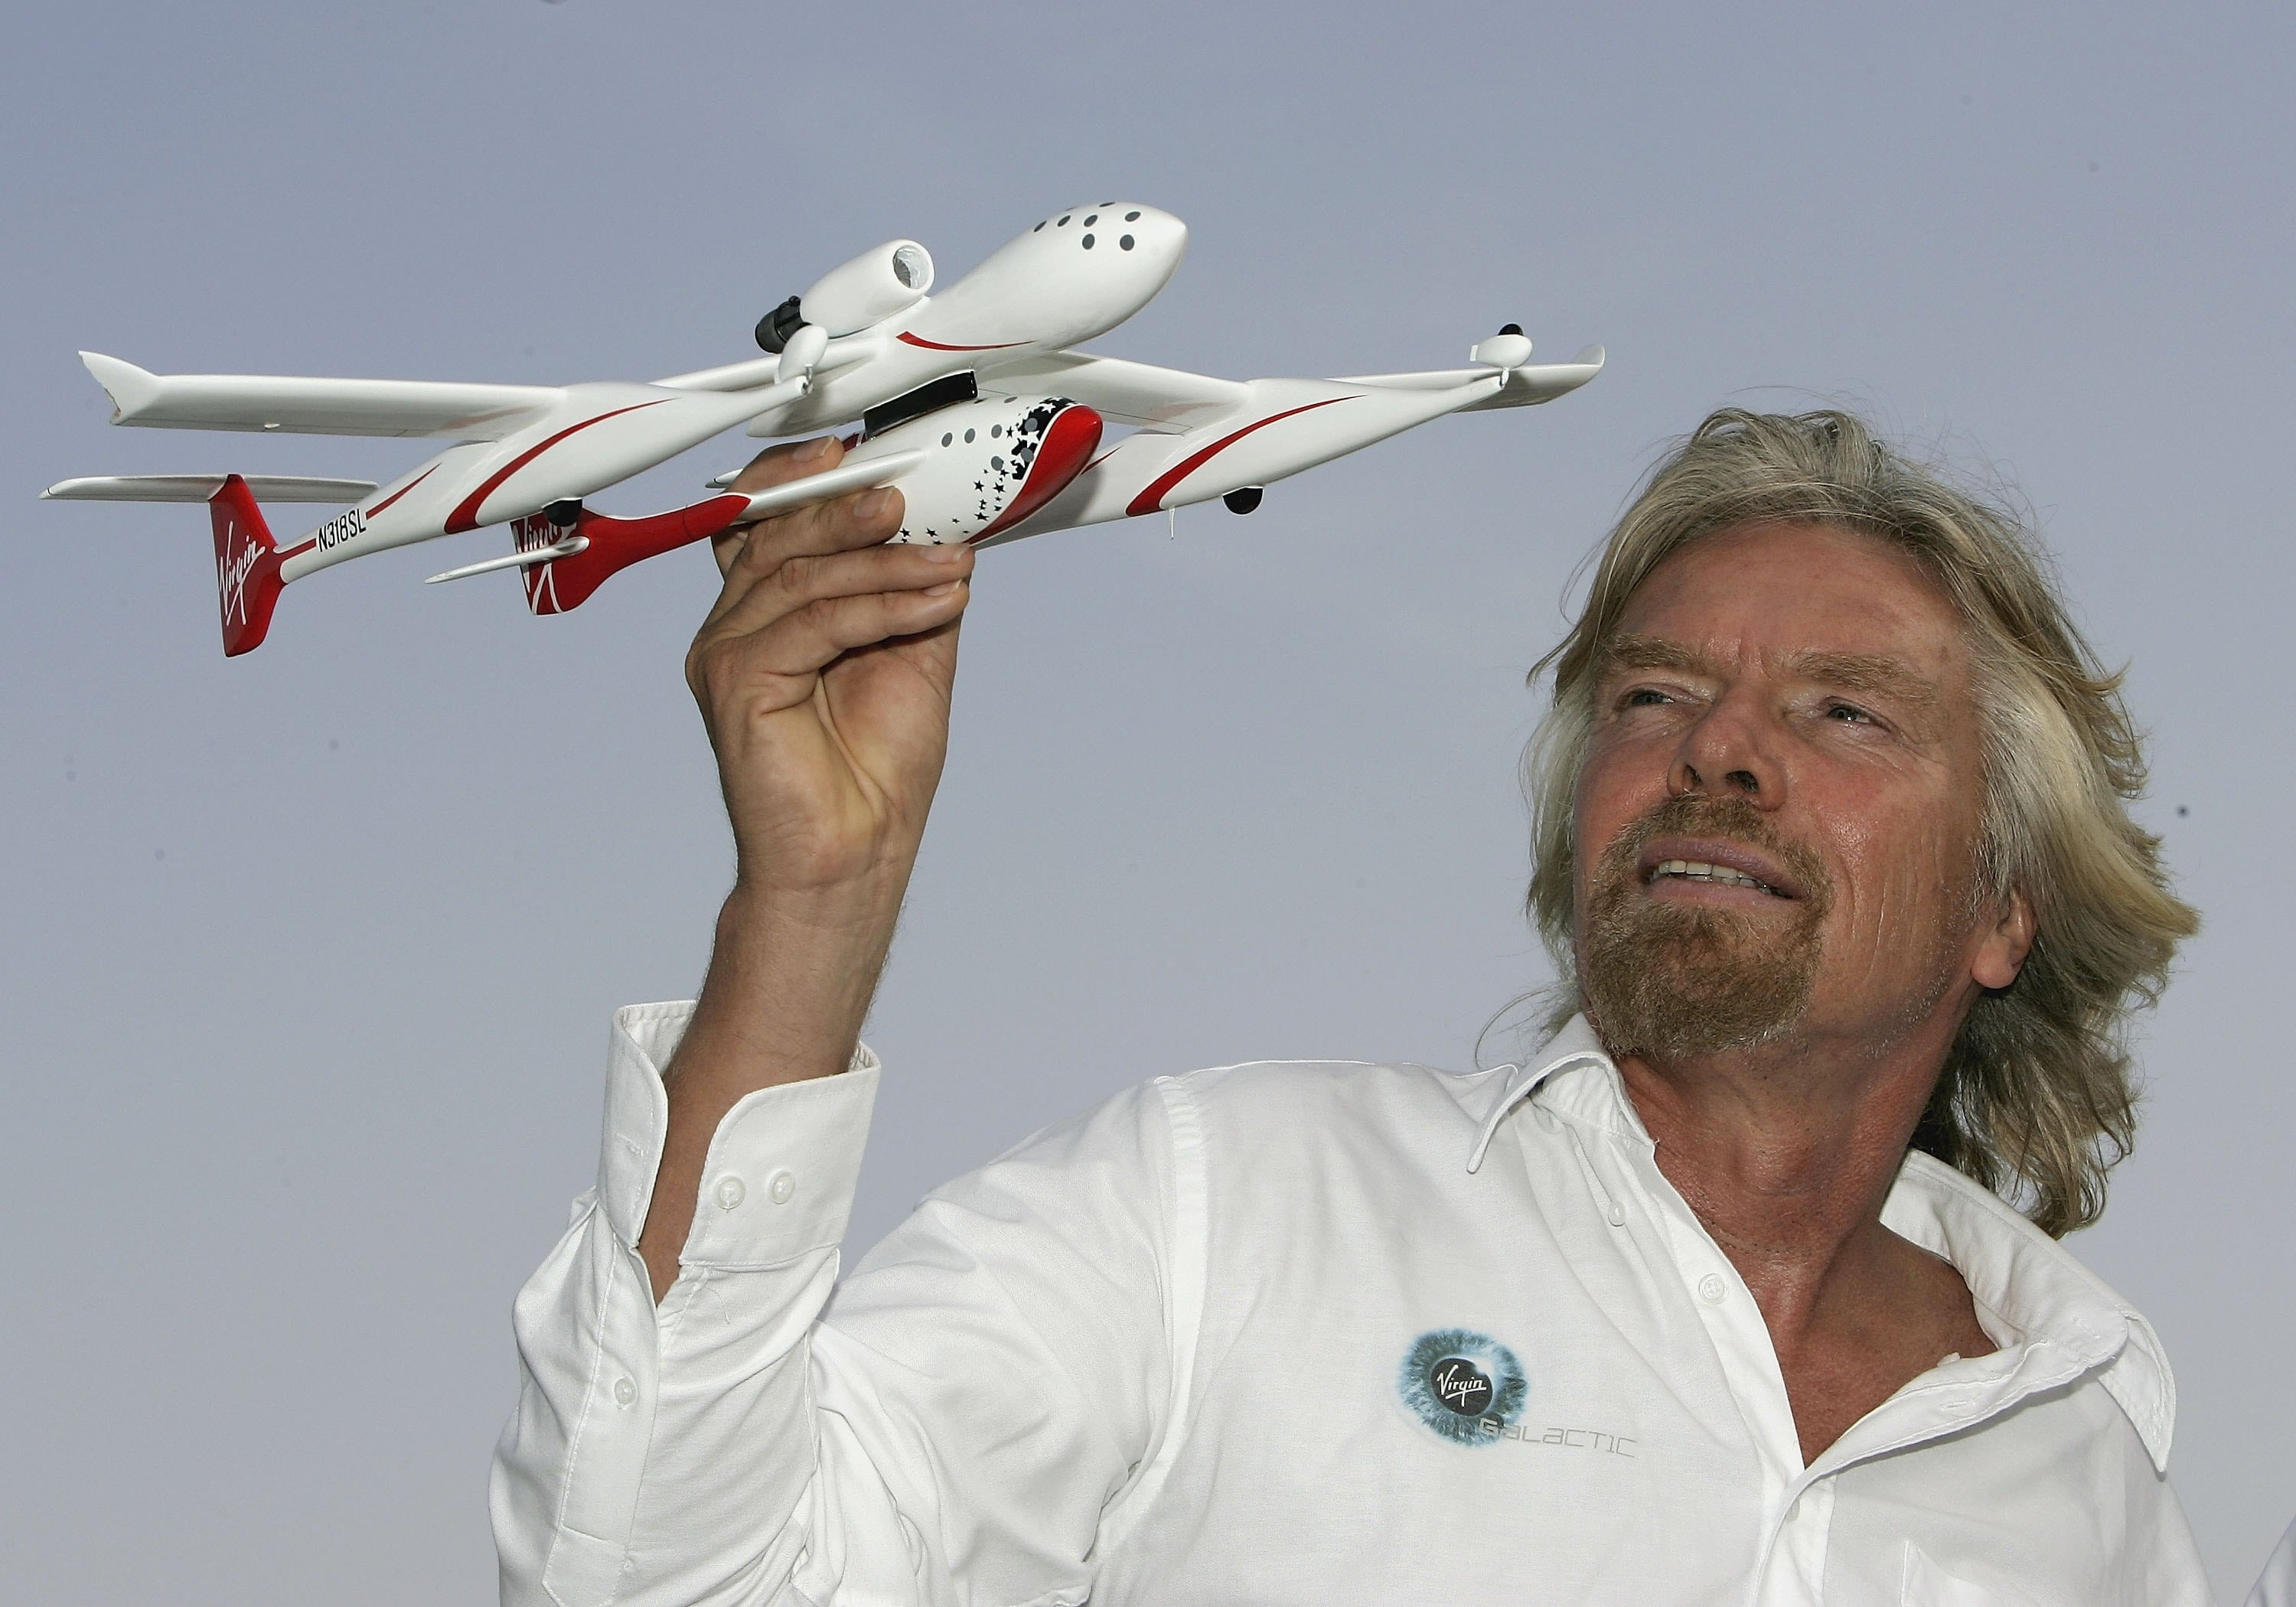 Richard Branson's Space Tourism Dream Is Crashing as Virgin Galactic Gets Rejection